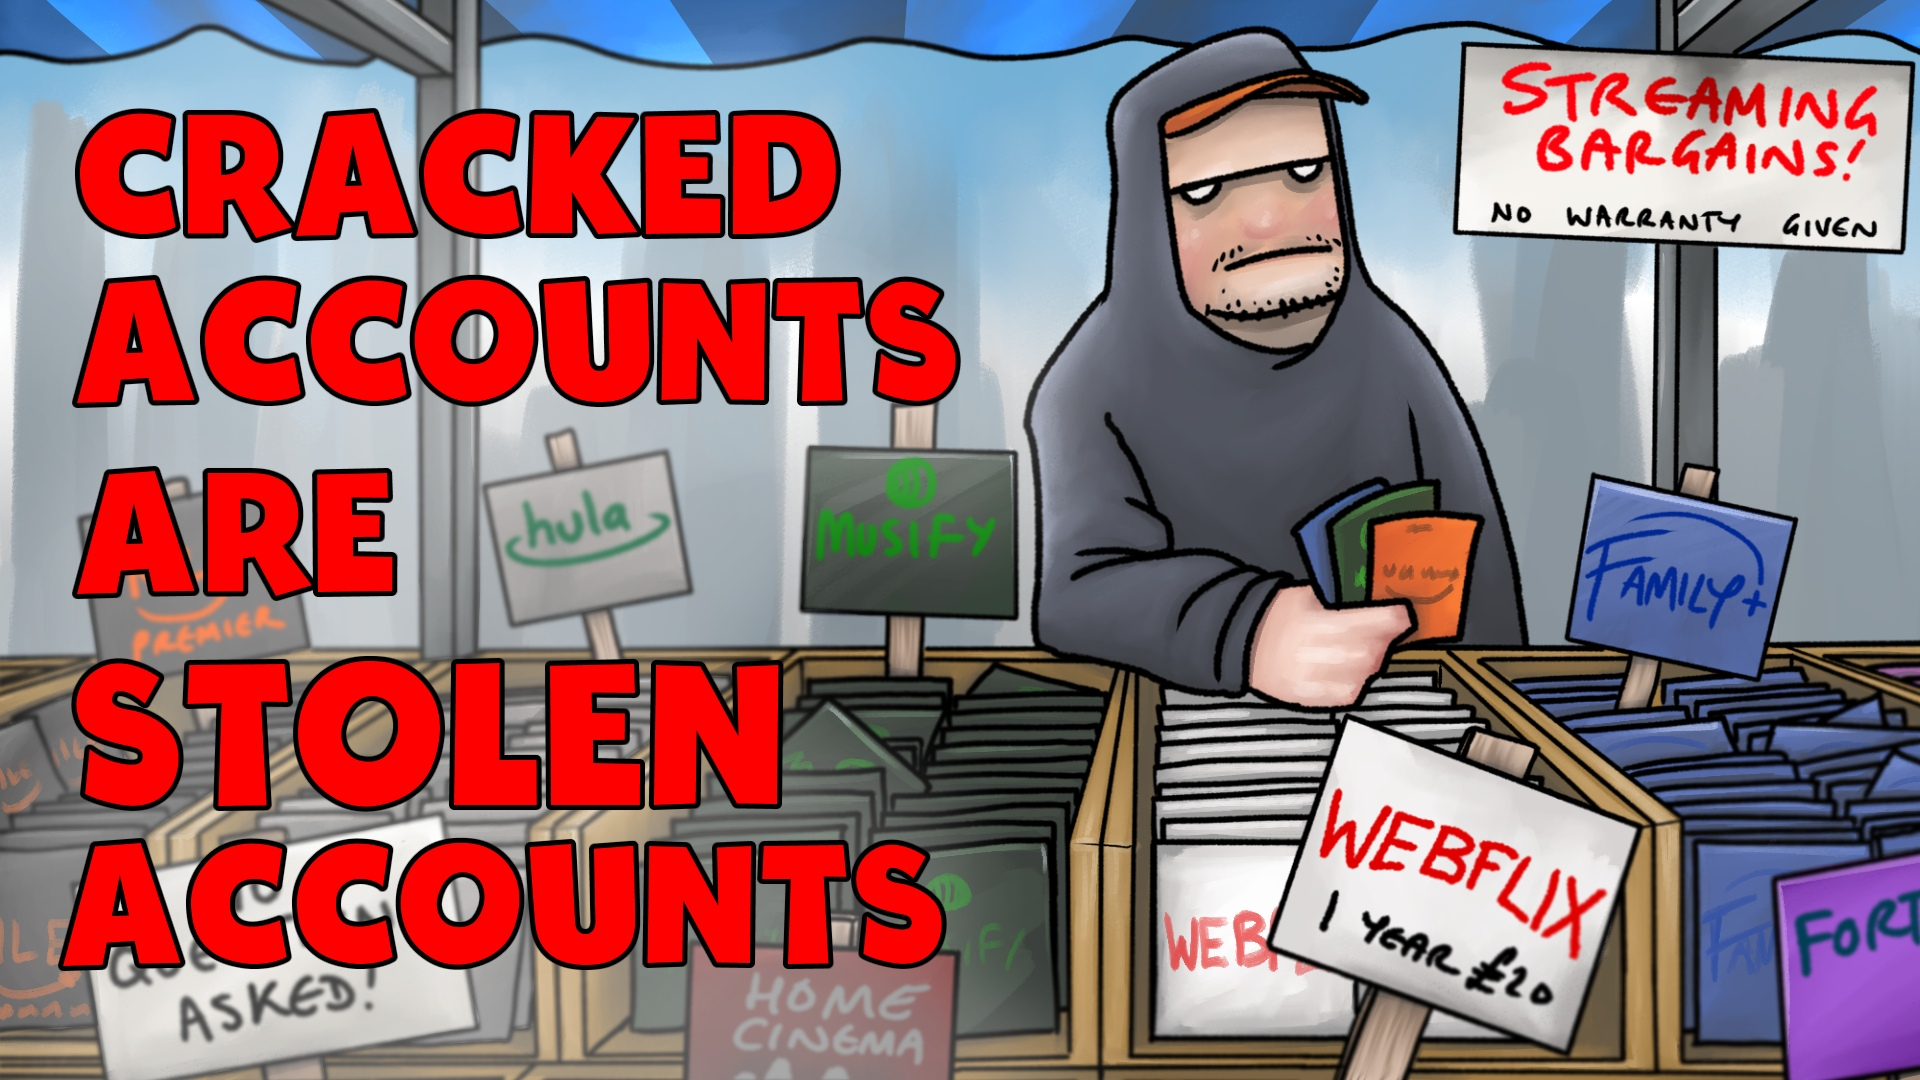 The NCA steps up its efforts to protect gamers from account hijacking